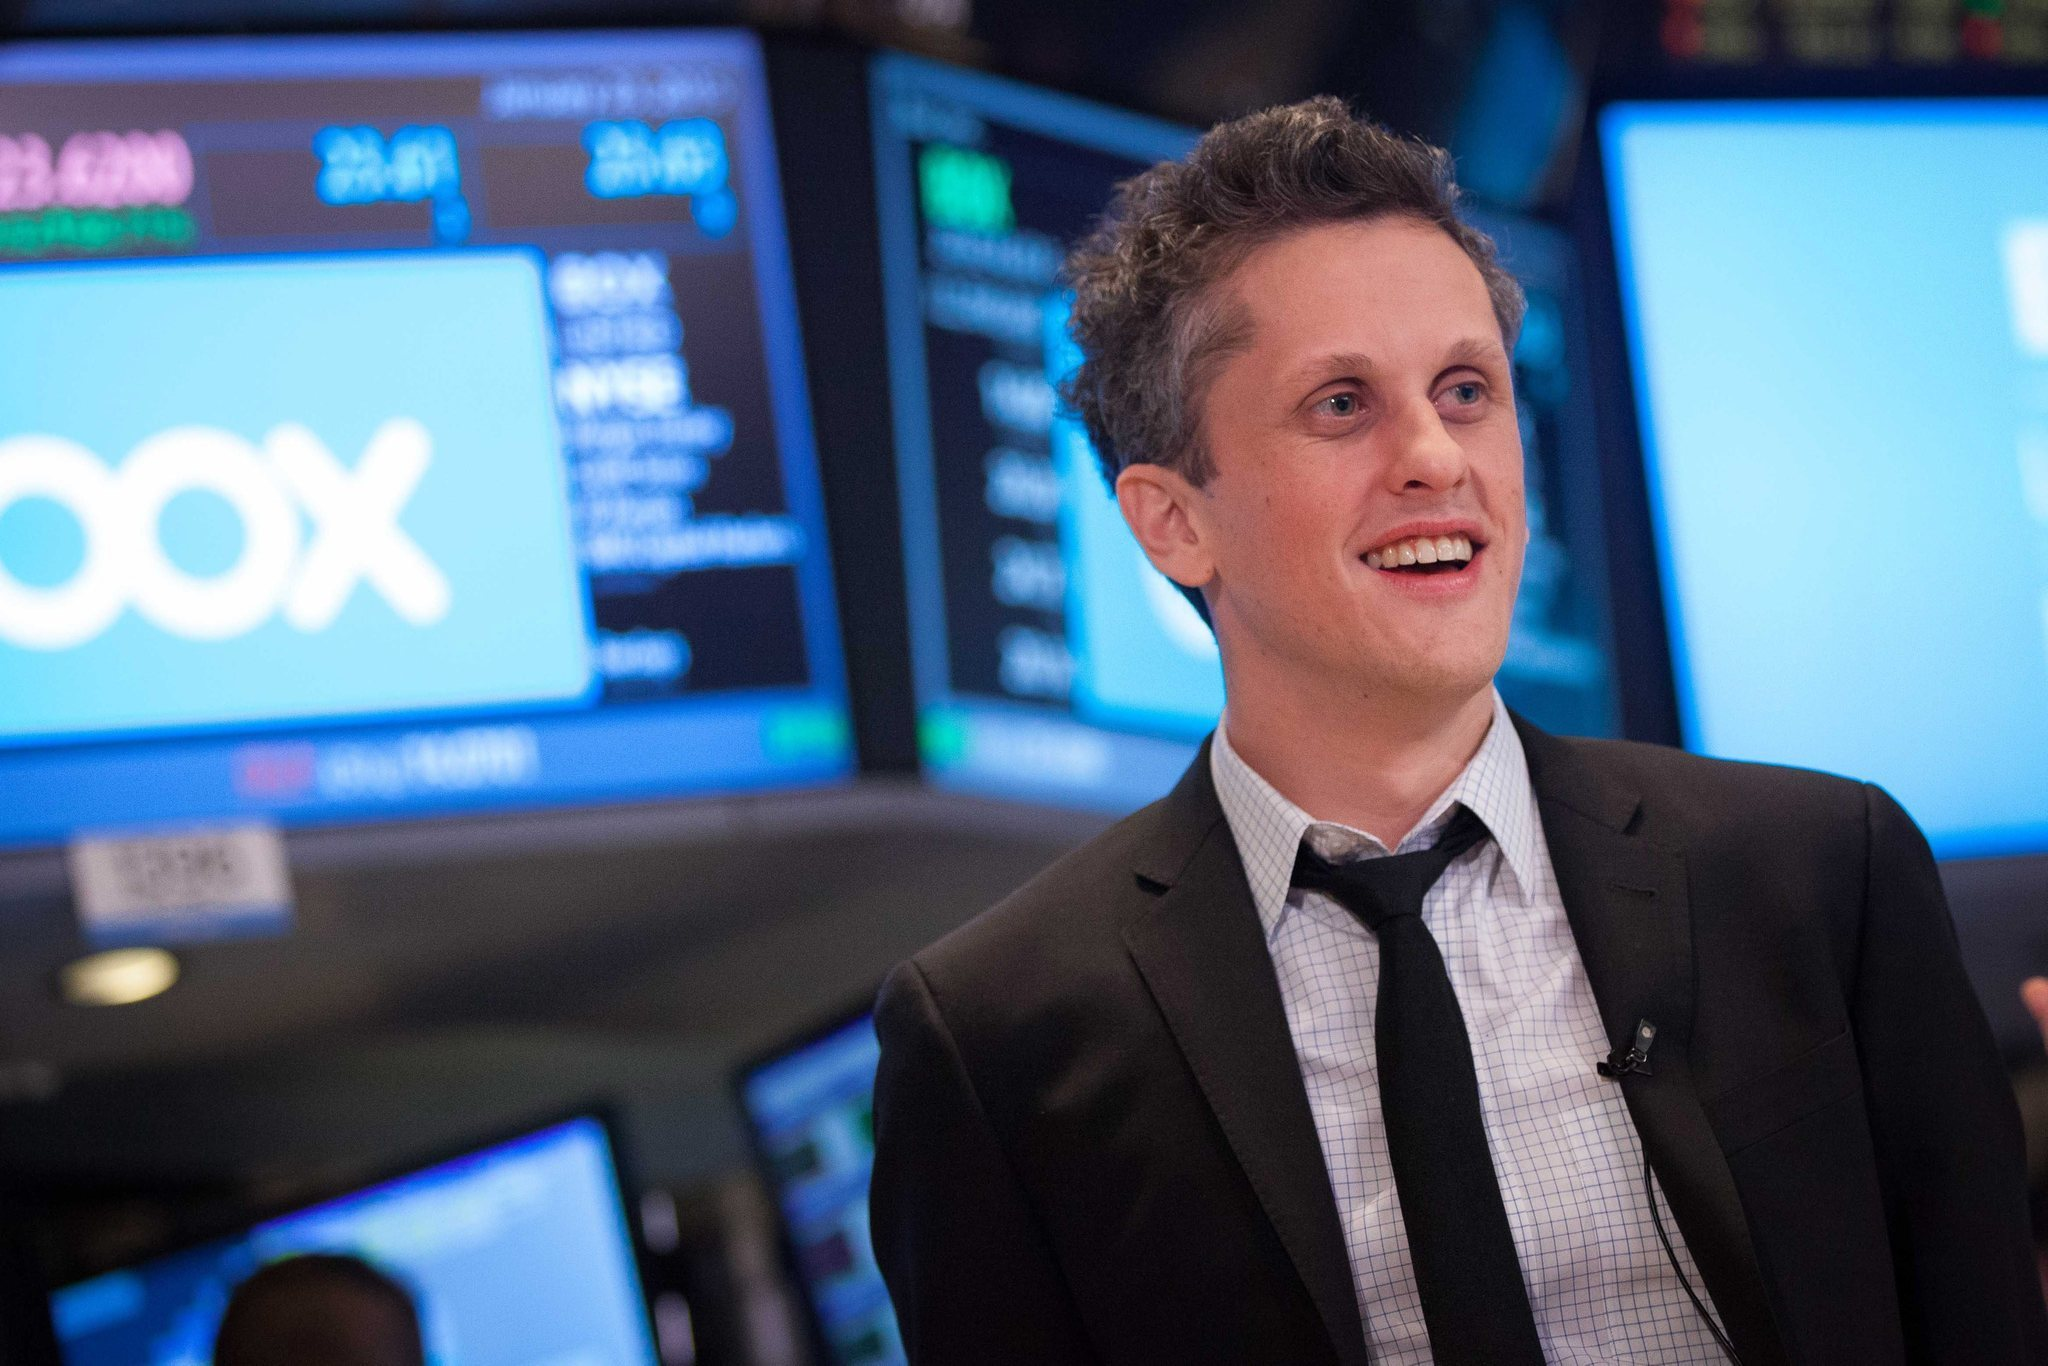 As Box shares soar in IPO, CEO Aaron Levie explains why he left L.A.